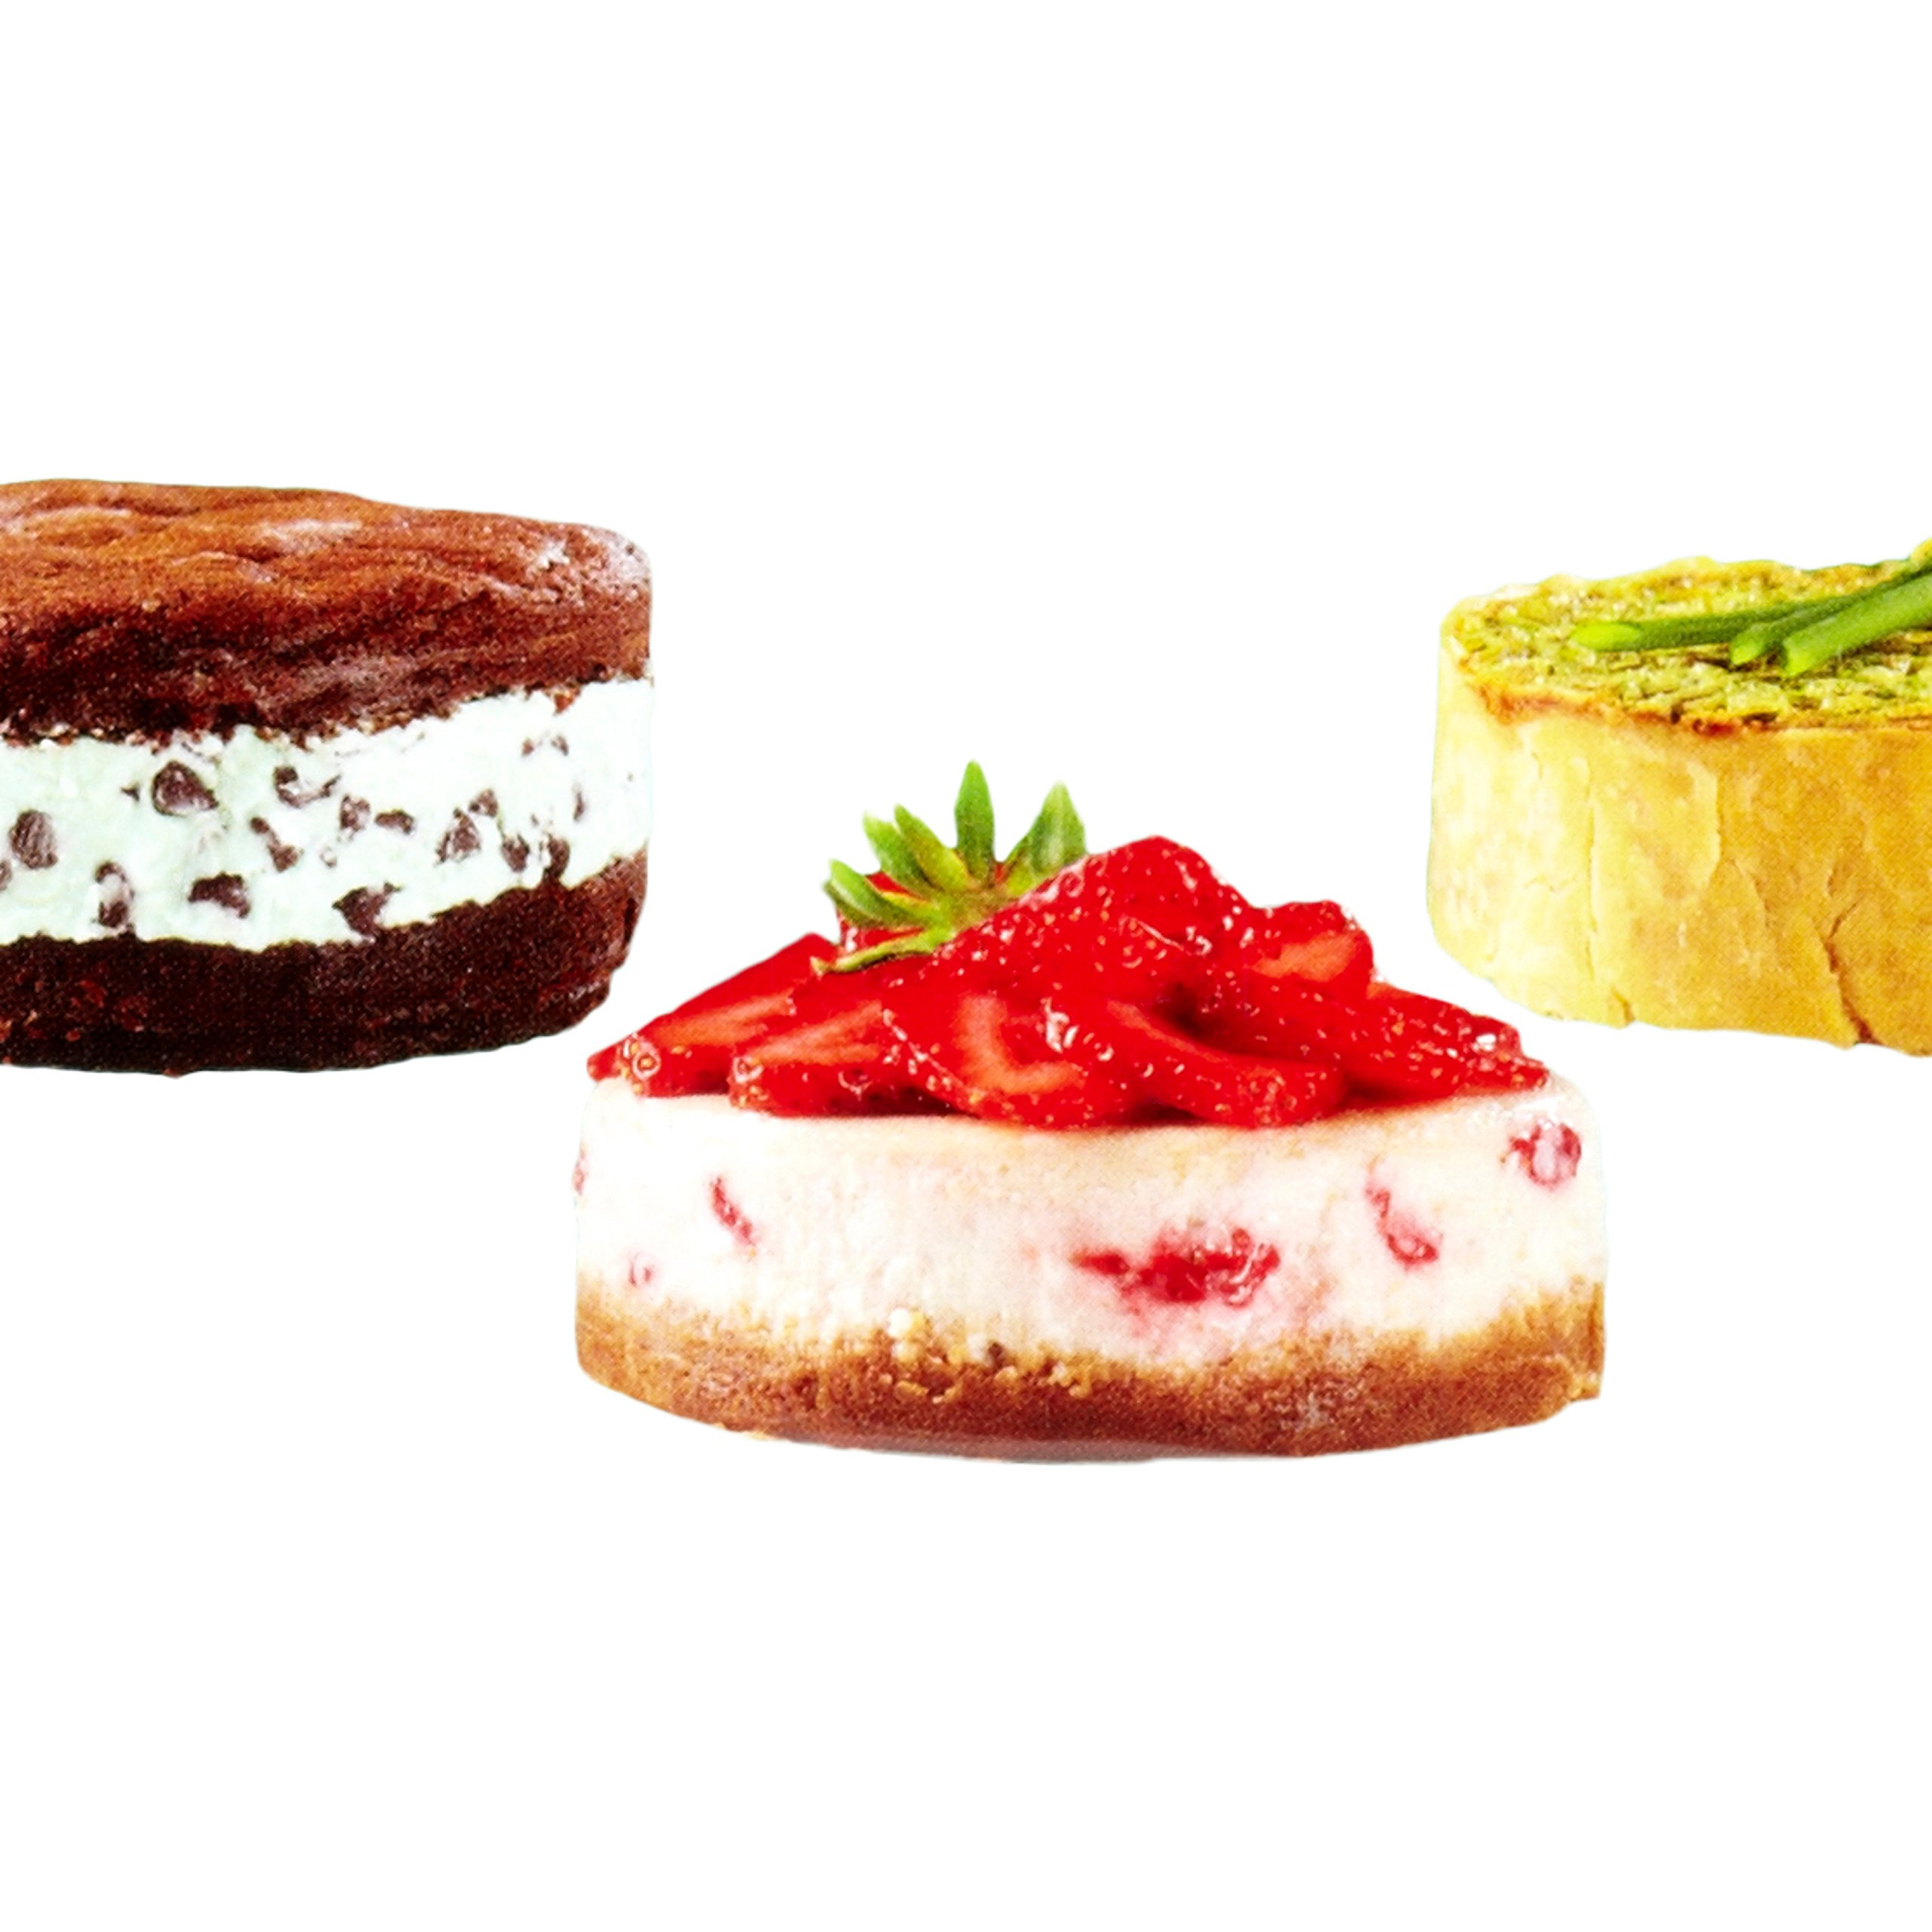 Wilton 4-Inch Mini Springform Pans Set, 3-Piece for Mini Cheesecakes, Pizzas and Quiches by Wilton (Image #6)